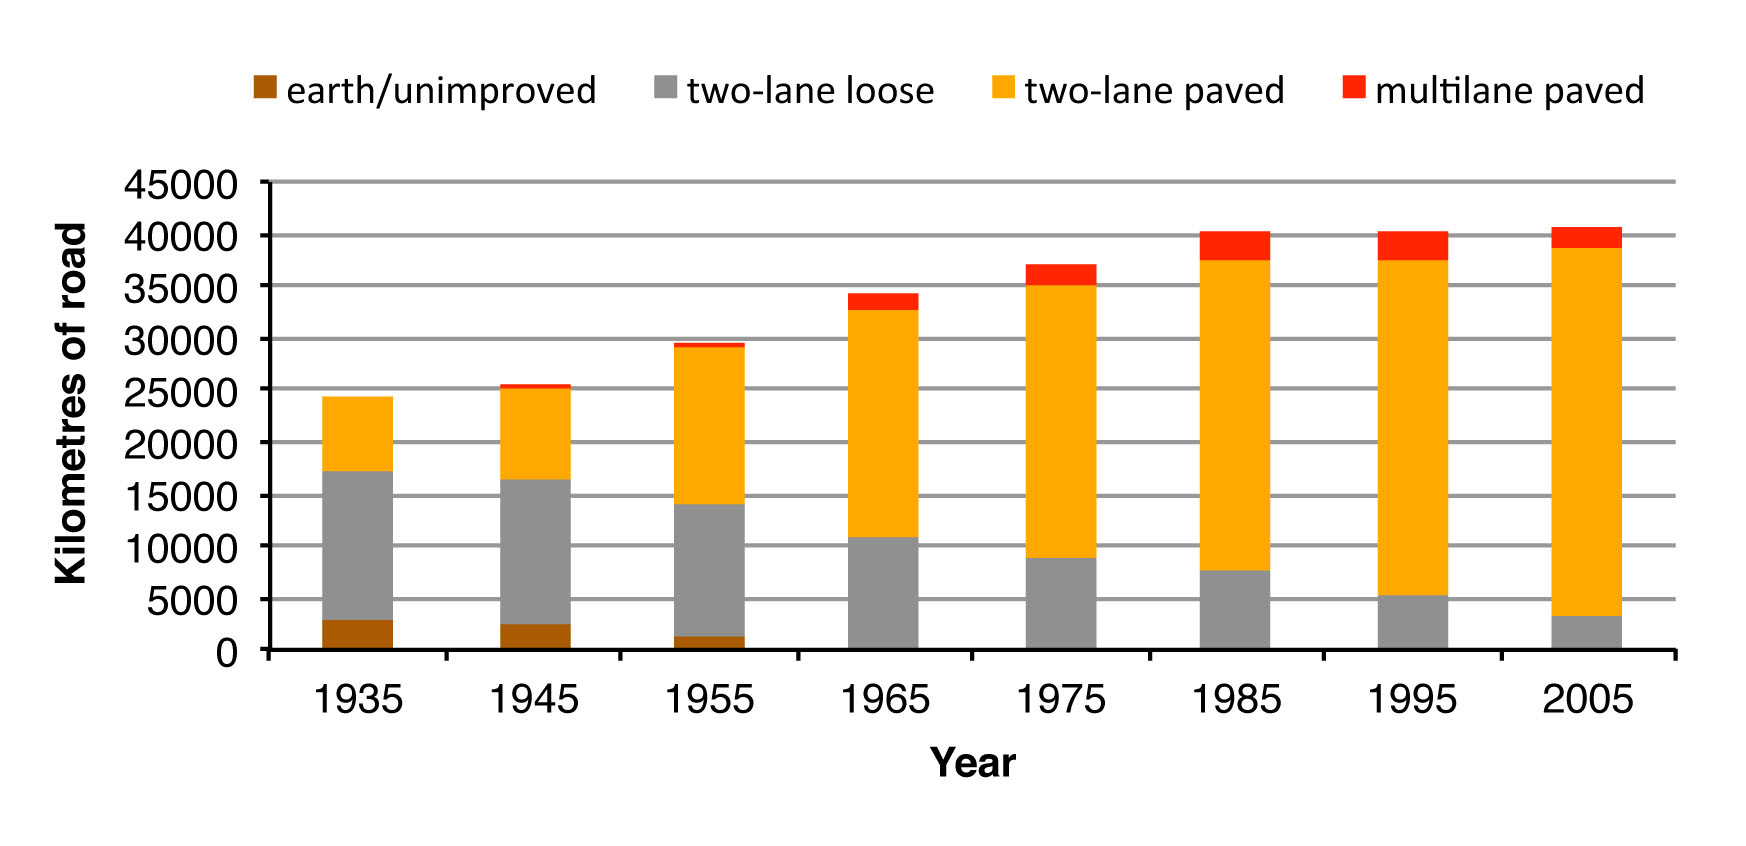 Figure 1. Major road changes in southern Ontario based on the Ontario Road Map, 1935-2005.